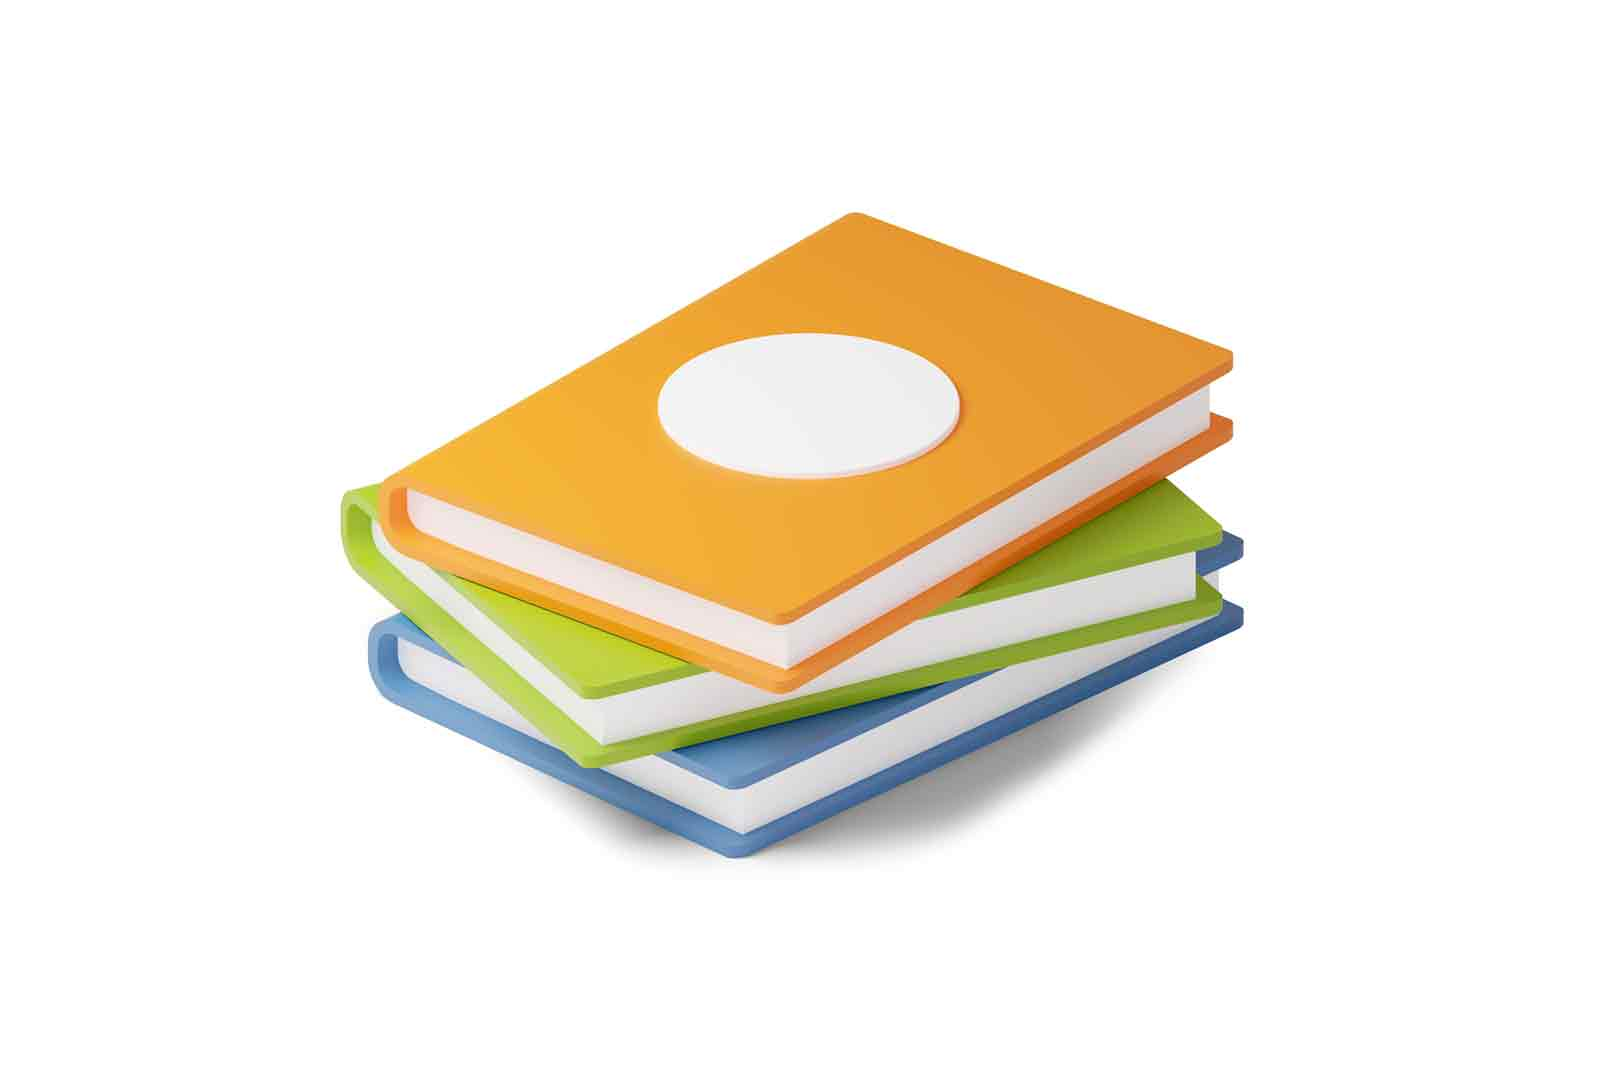 Stack of colourful books 3d illustration. Isometric pile of textbooks for learning. Concept of studying, back to school or reading